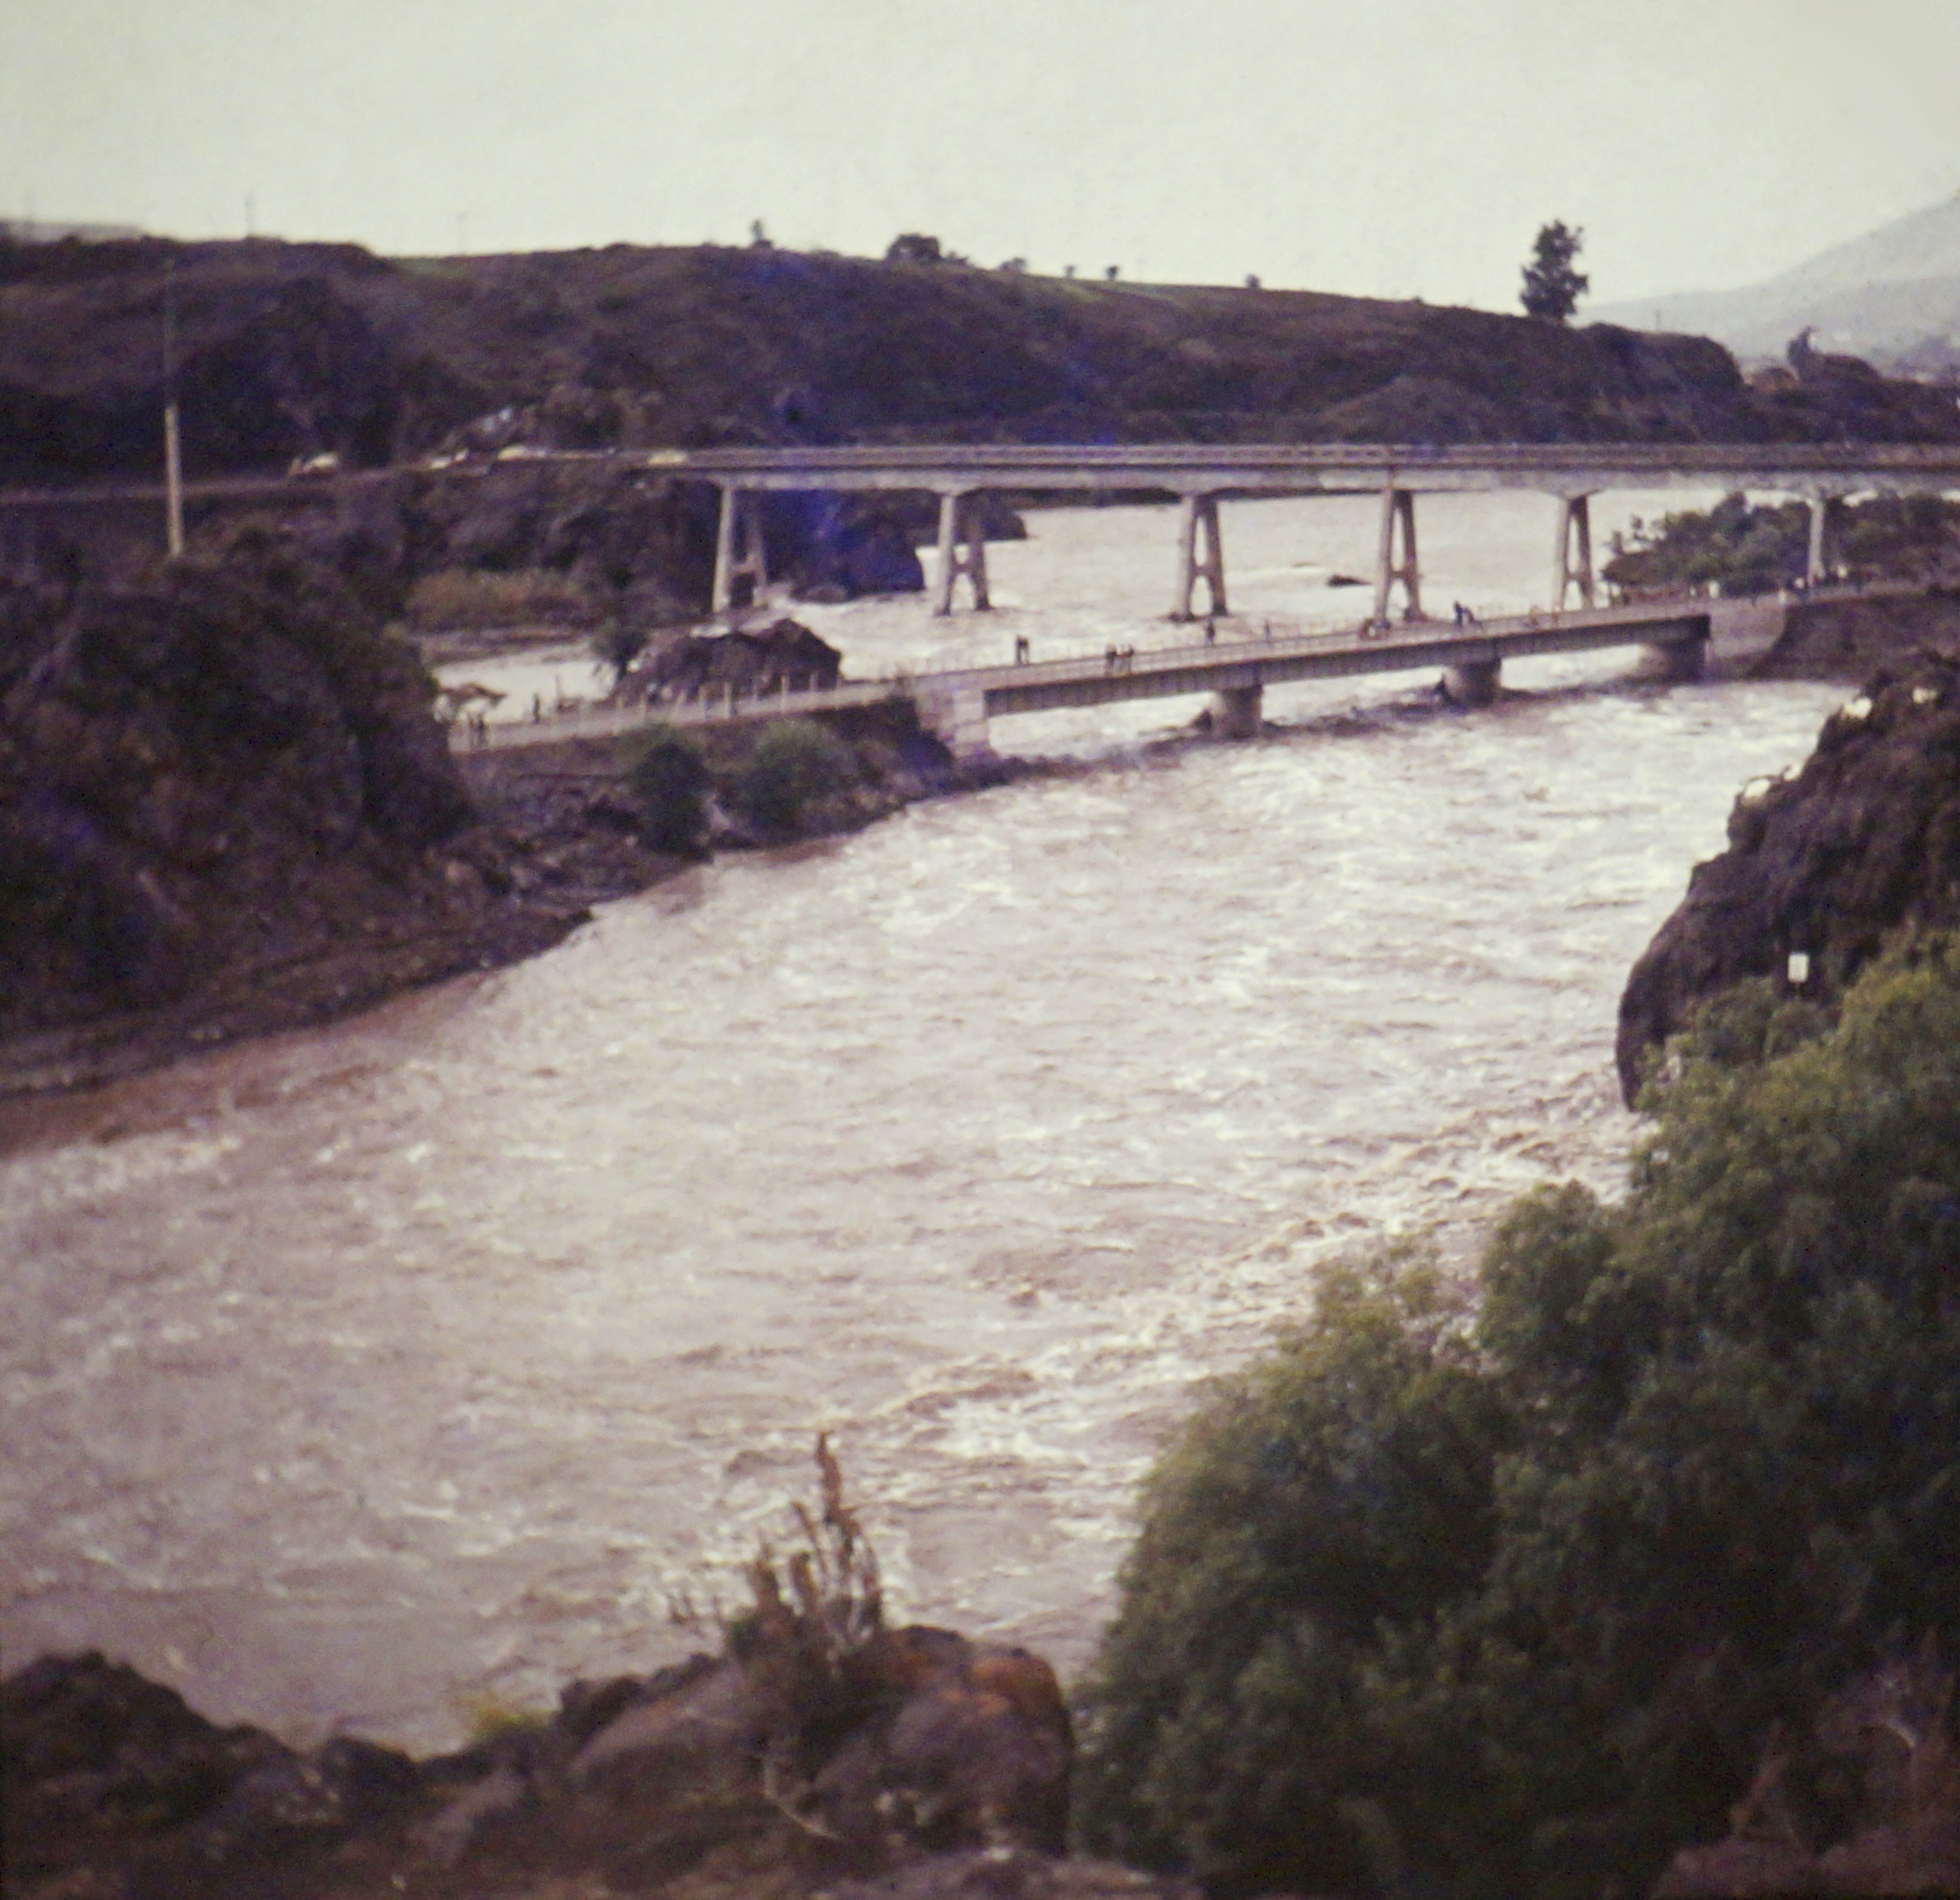 Enterreno - Fotos históricas de chile - fotos antiguas de Chile - Temporal en Ovalle en 1984